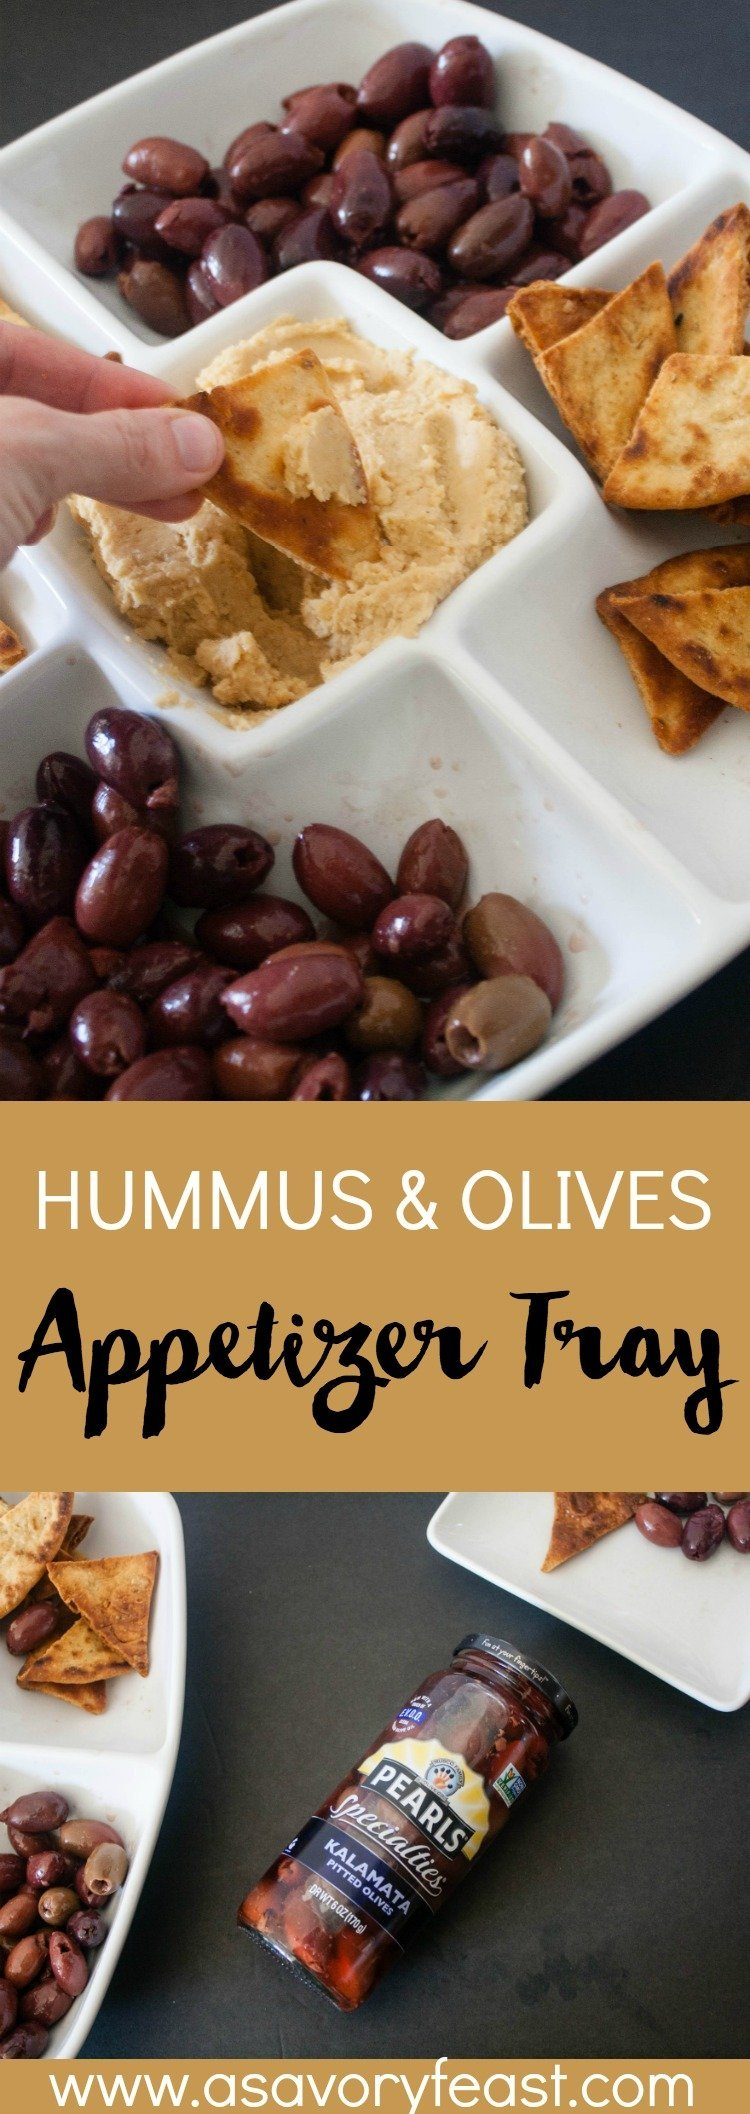 #AD Need a simple, semi-homemade appetizer idea for Easter? Your guests will love this Hummus and Olives Appetizer Tray! Learn how to make homemade pita chips and hummus to serve along with Pearls® Specialties olives on this tasty, flavor-packed tray.